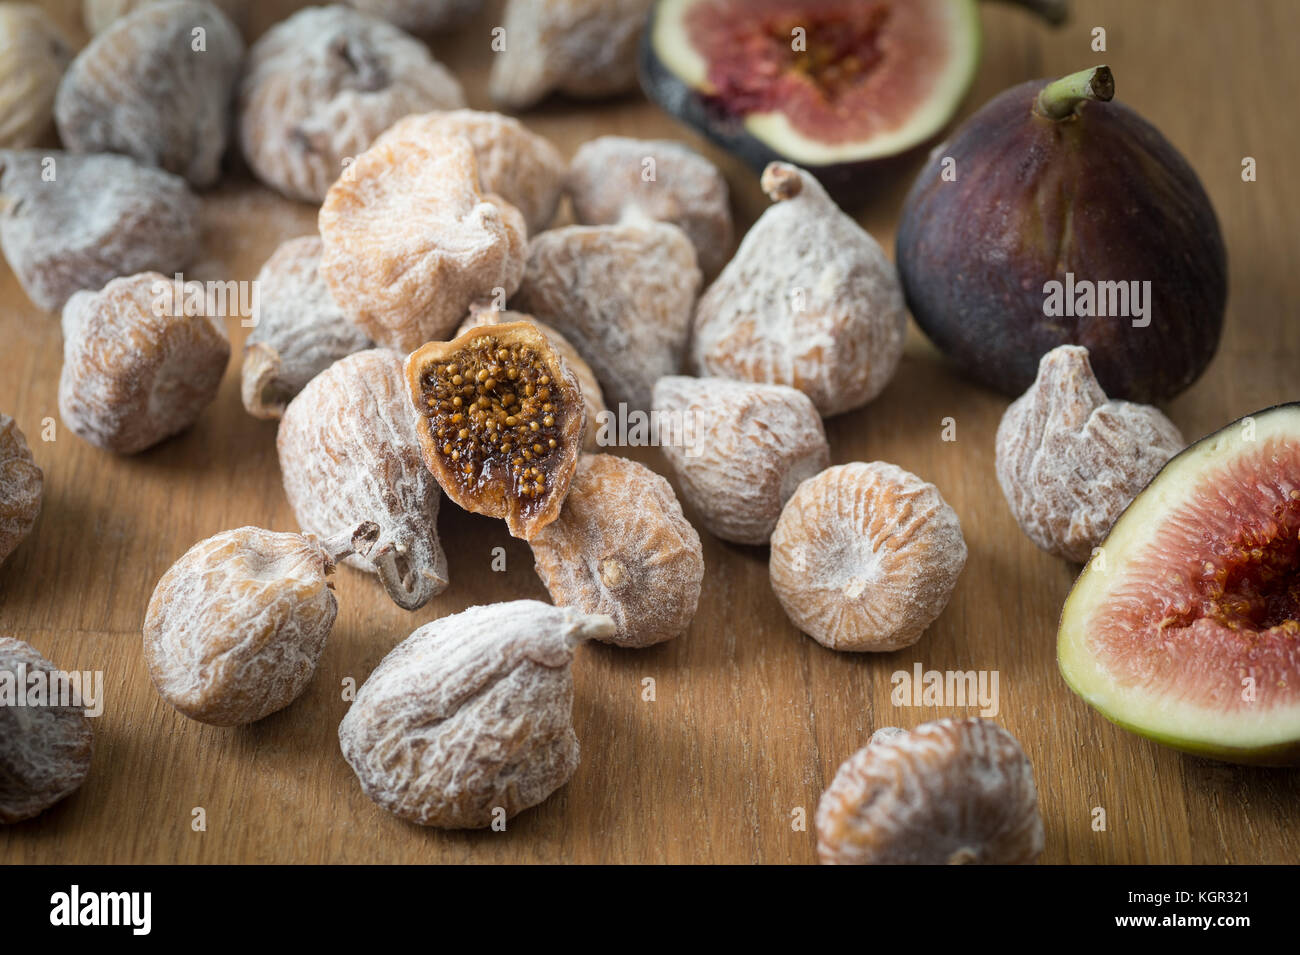 Organic dried and fresh figs. - Stock Image